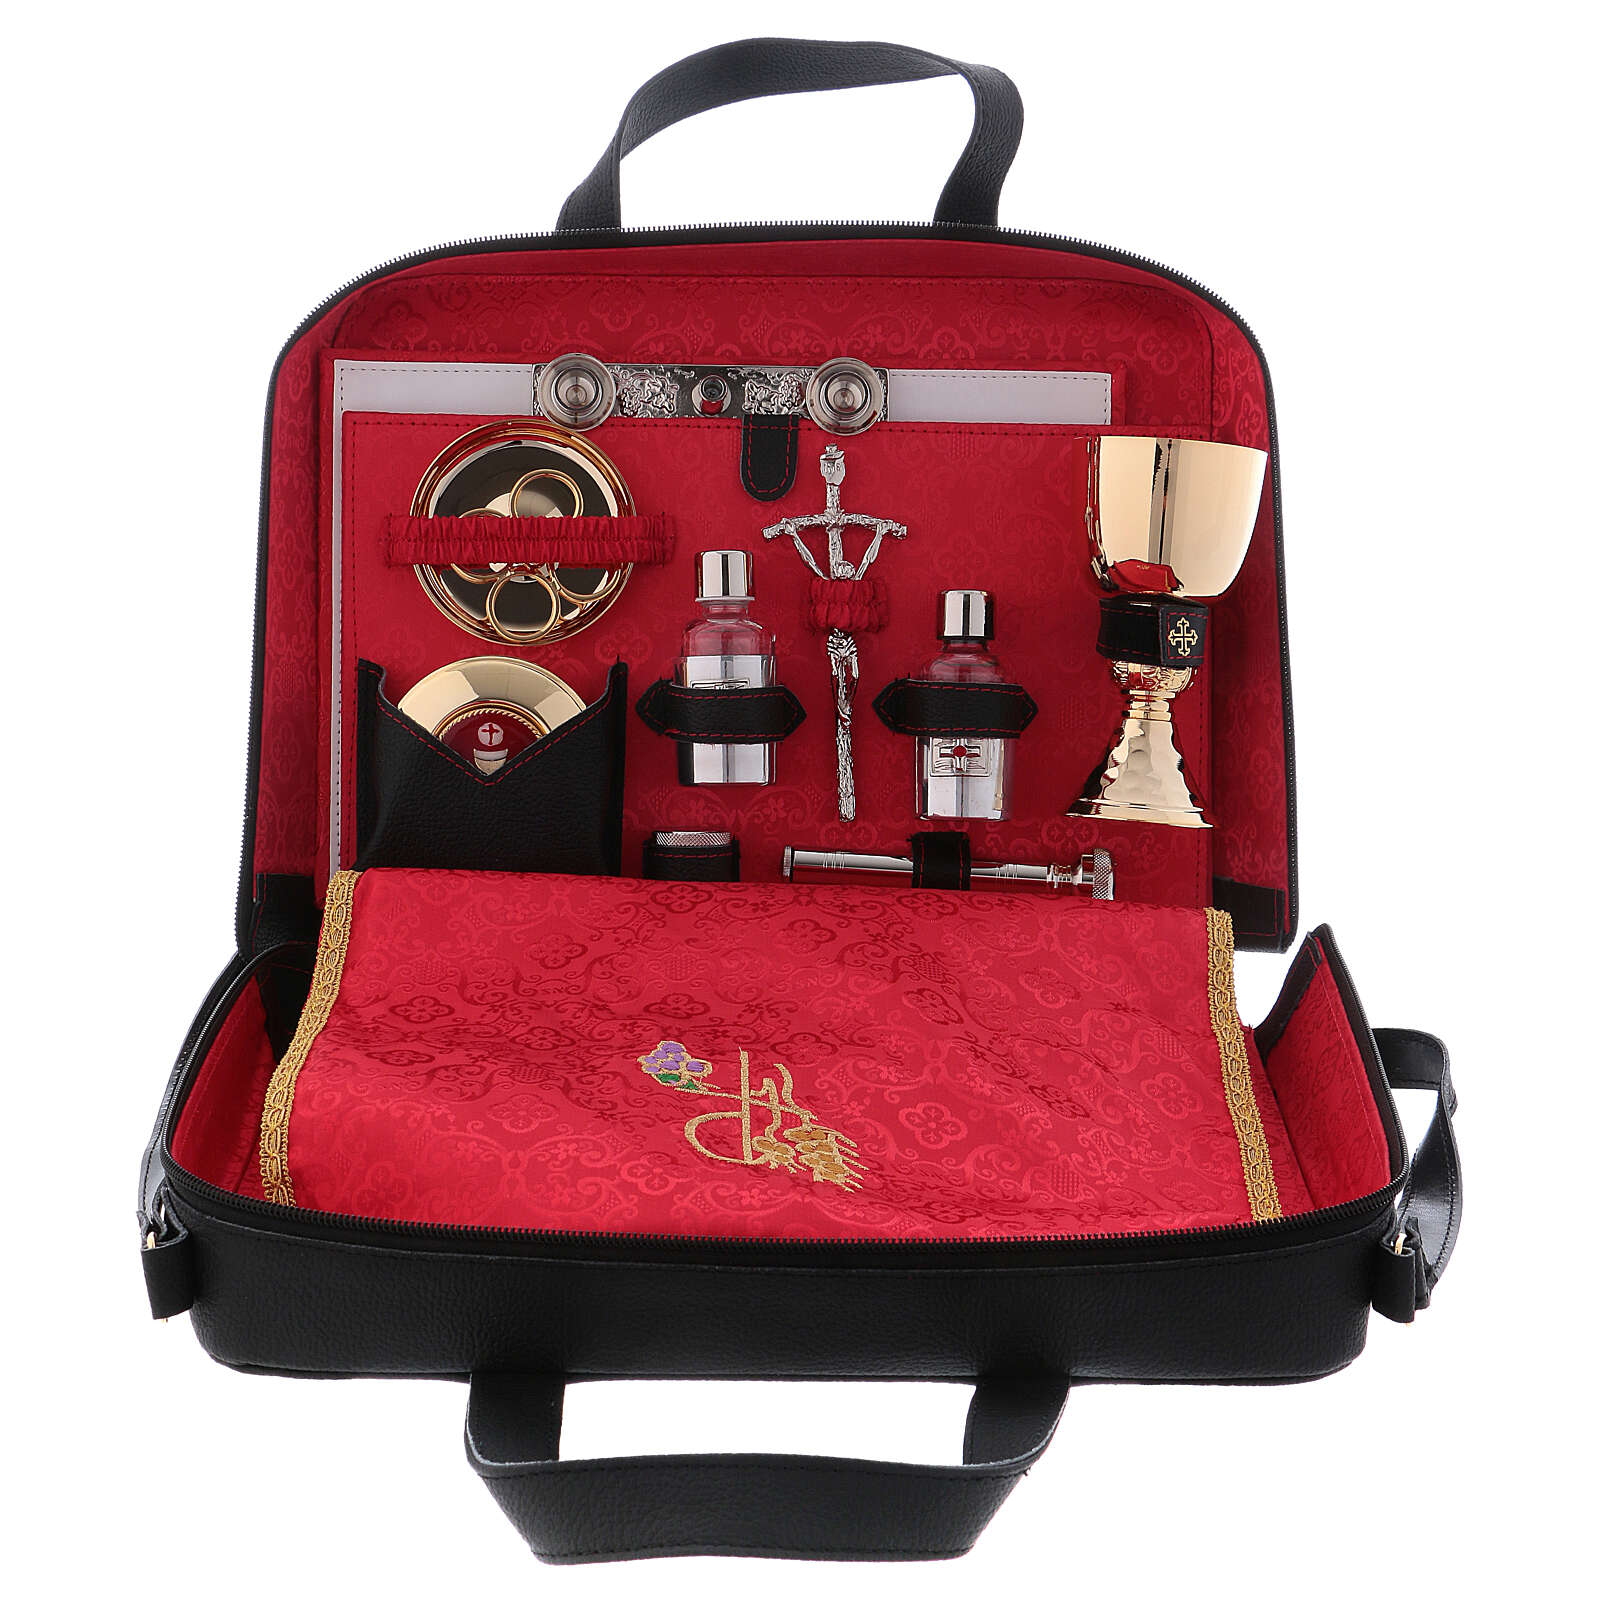 Mass kit with real leather bag, lined with red satin 3